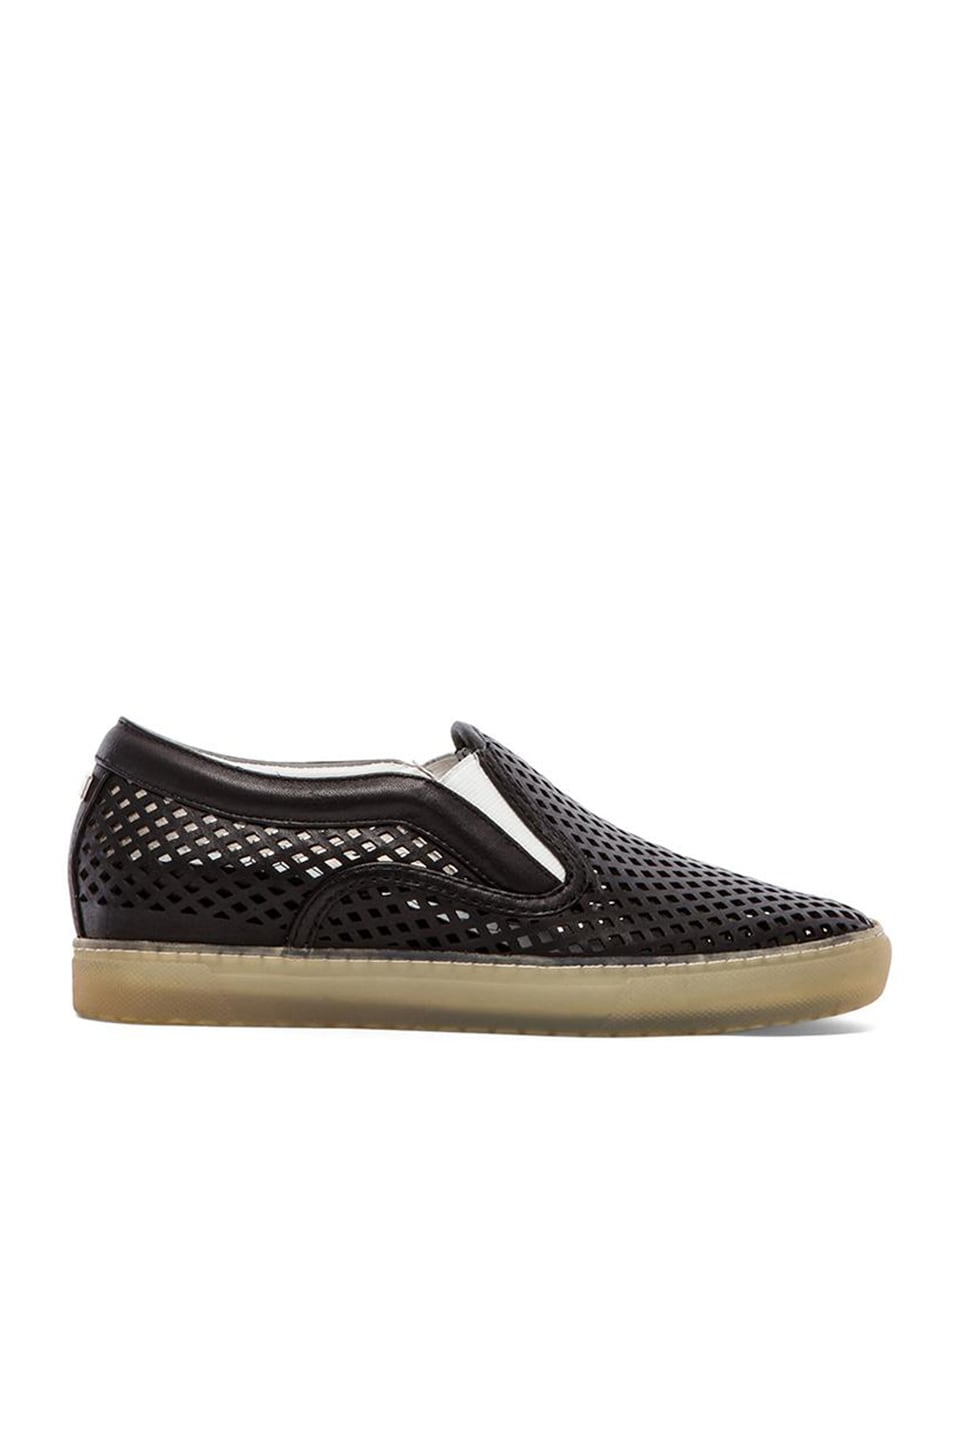 Dolce Vita Zaren Slip-On in Black